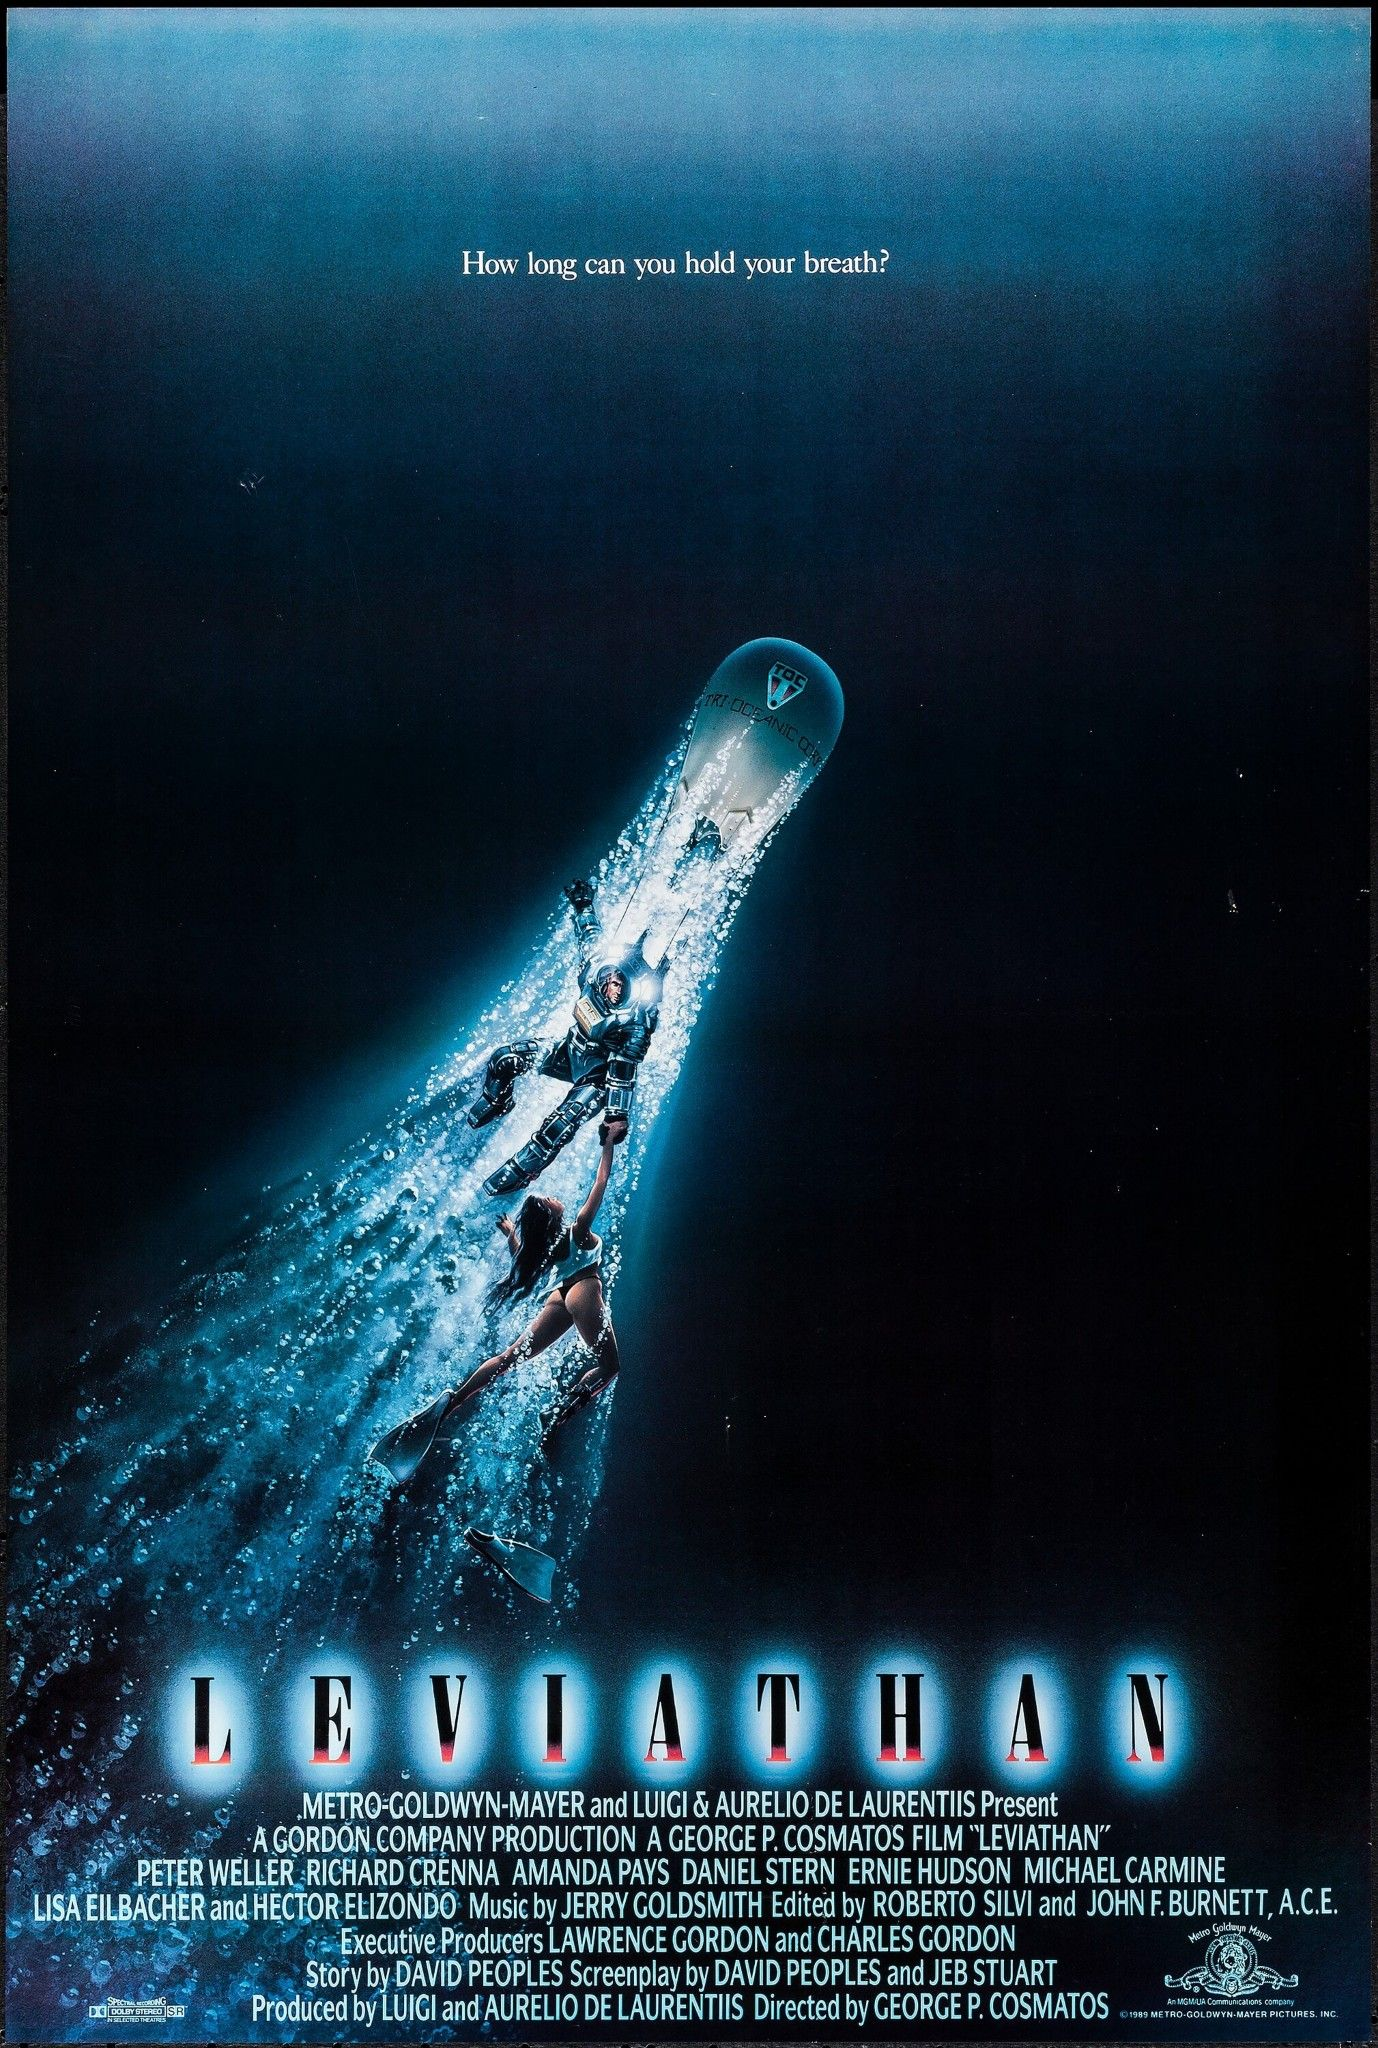 LEVIATHAN (1989) | Movie posters, Science fiction movie ...